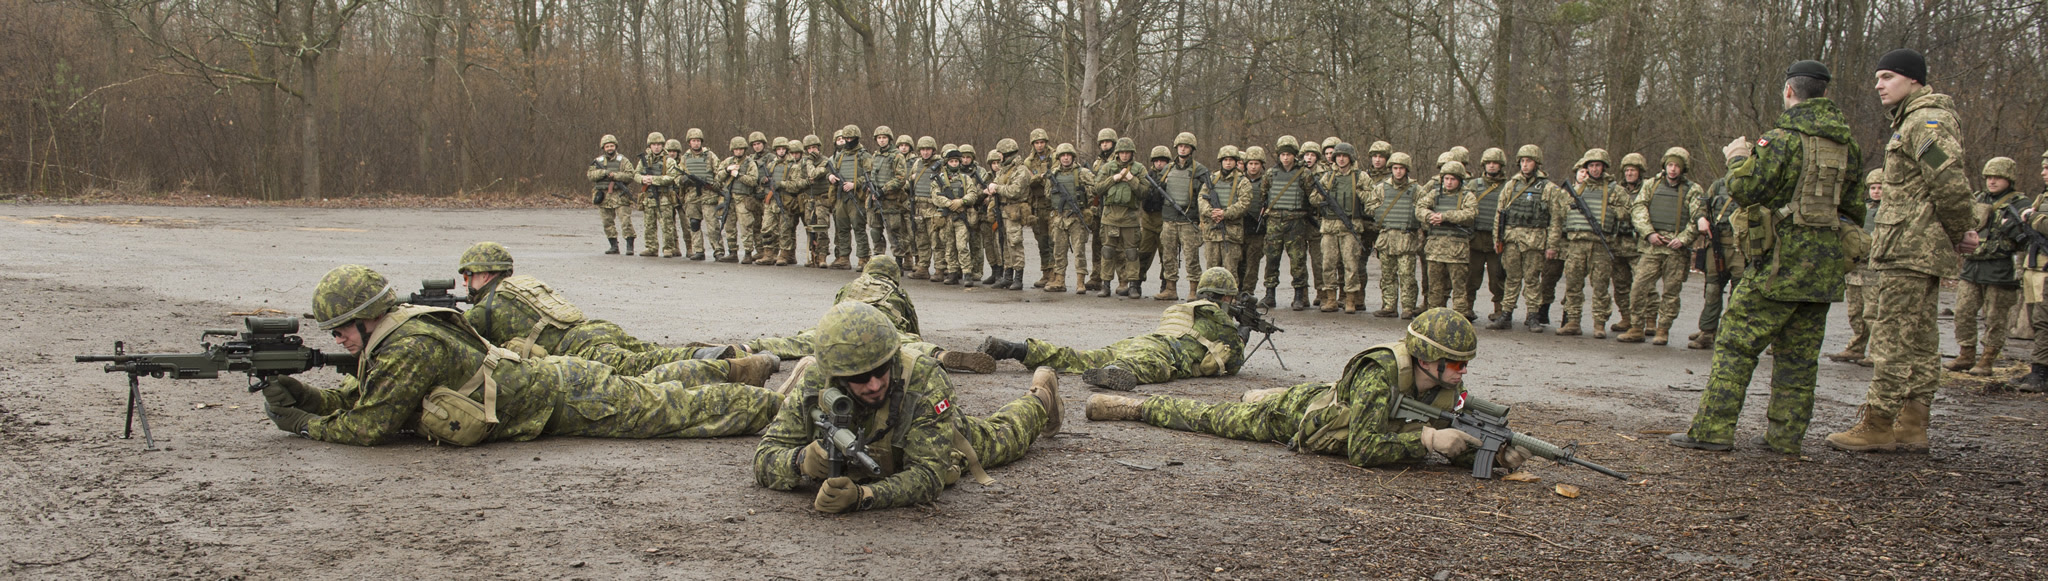 Canadian Armed Forces members demonstrate section patrol techniques to Ukrainian Armed Forces members, during Operation UNIFIER at the International Peacekeeping and Security Centre (IPSC) in Starychi on March 7, 2016. (Photo: Canadian Forces Combat Camera, DND)